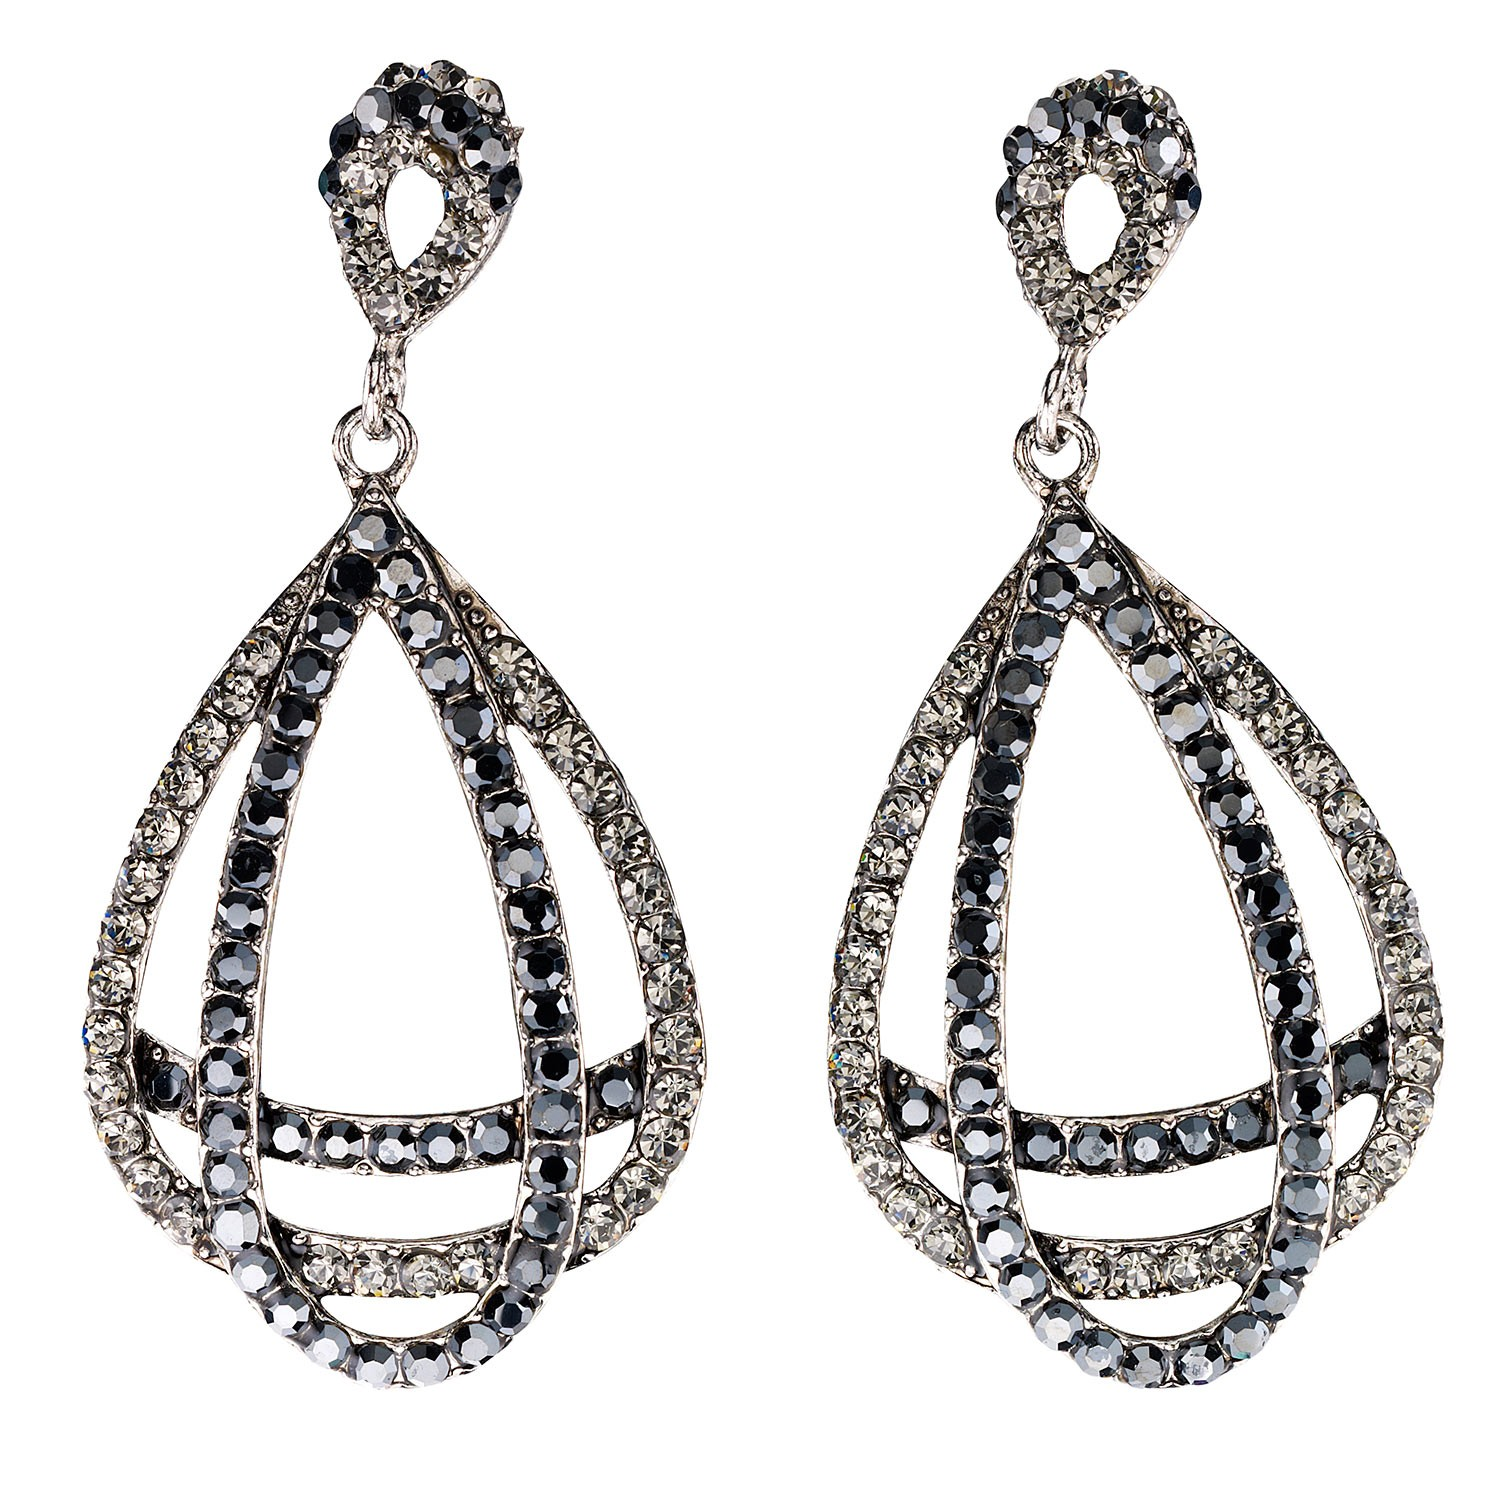 7804dcc42 Entwined Double Pear Drop Crystal Earrings with Black and Black Diamond Swarovski  Crystal